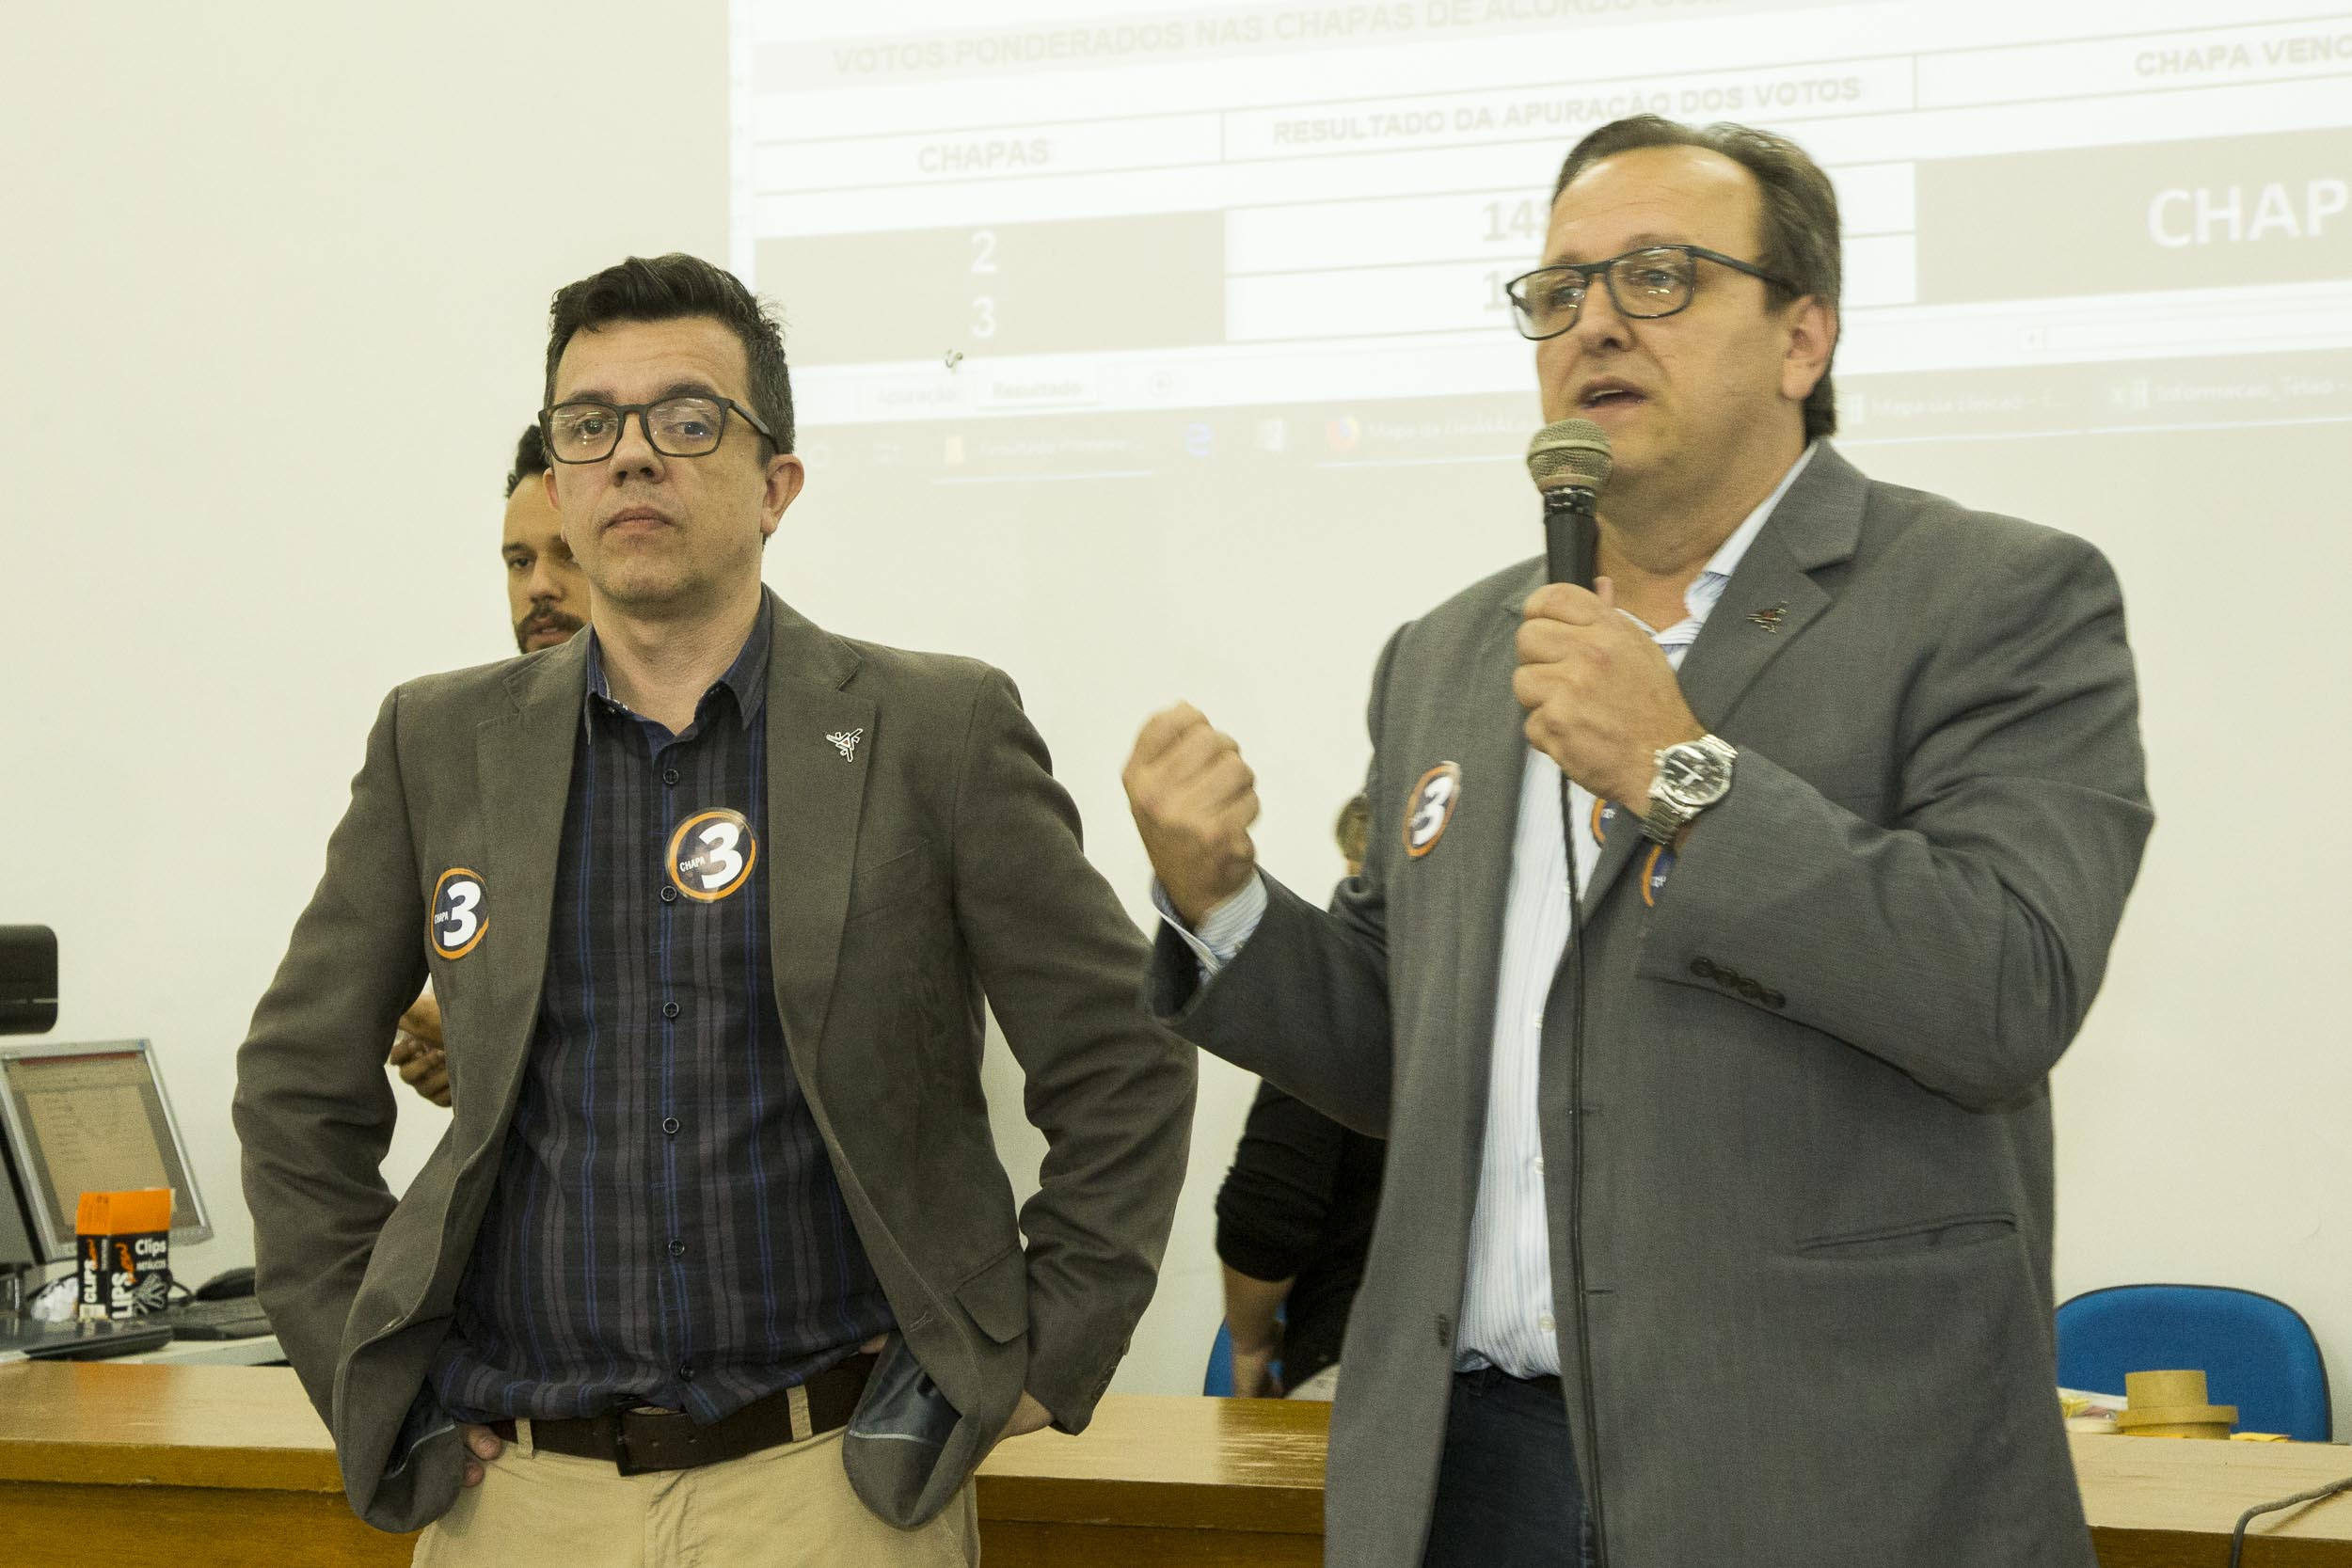 2018 09 05 Apuracao do segundo turno das eleicoes para Reitor MG 8846